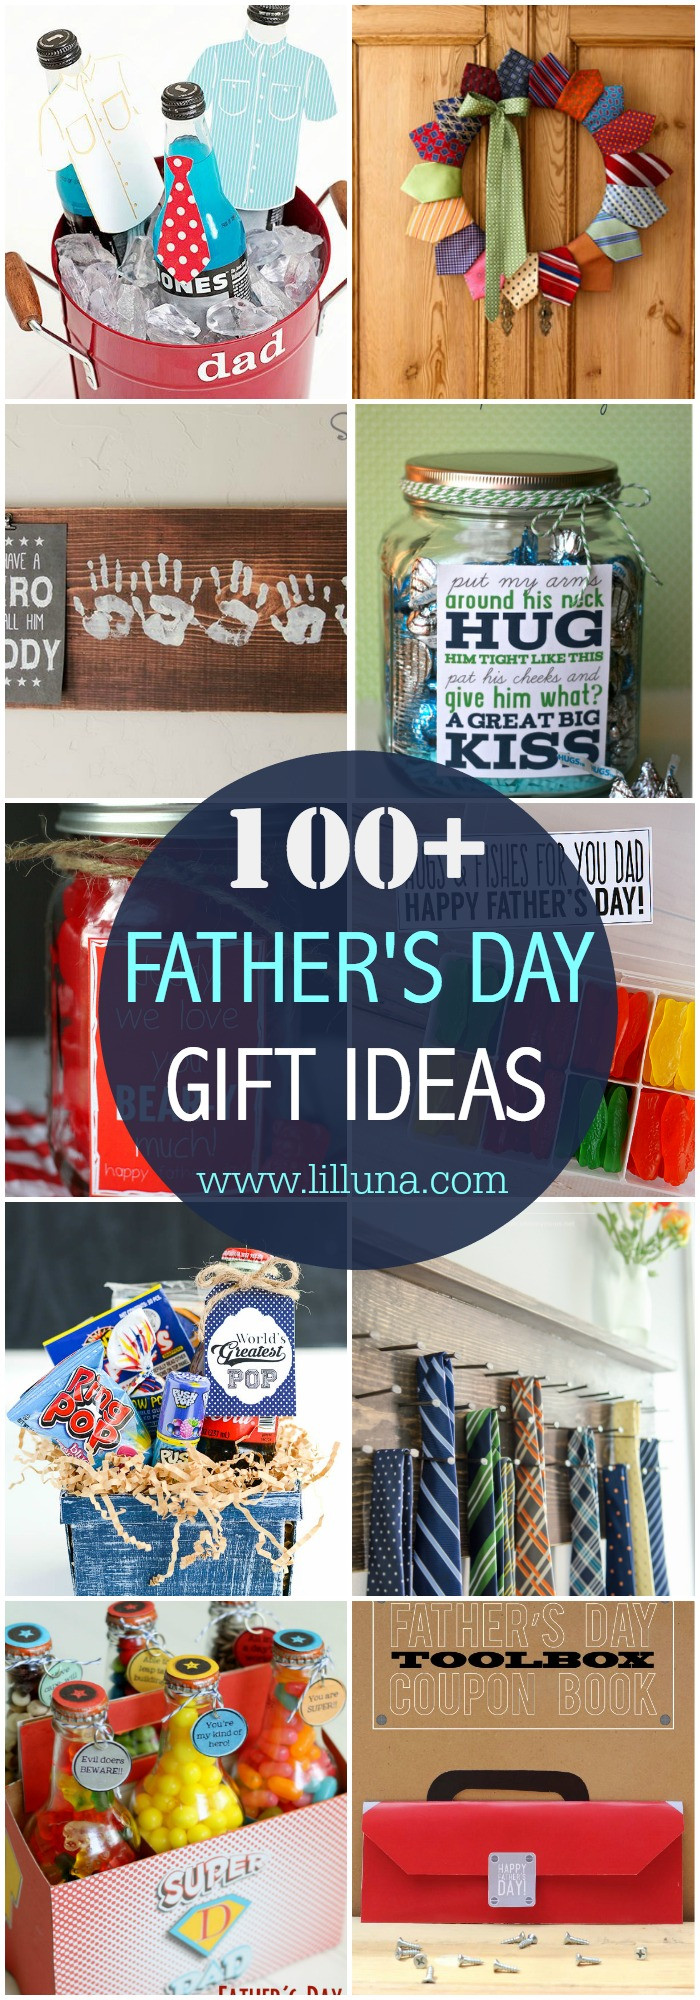 Best ideas about Fathers Day DIY Gifts . Save or Pin 100 DIY Father s Day Gifts Now.